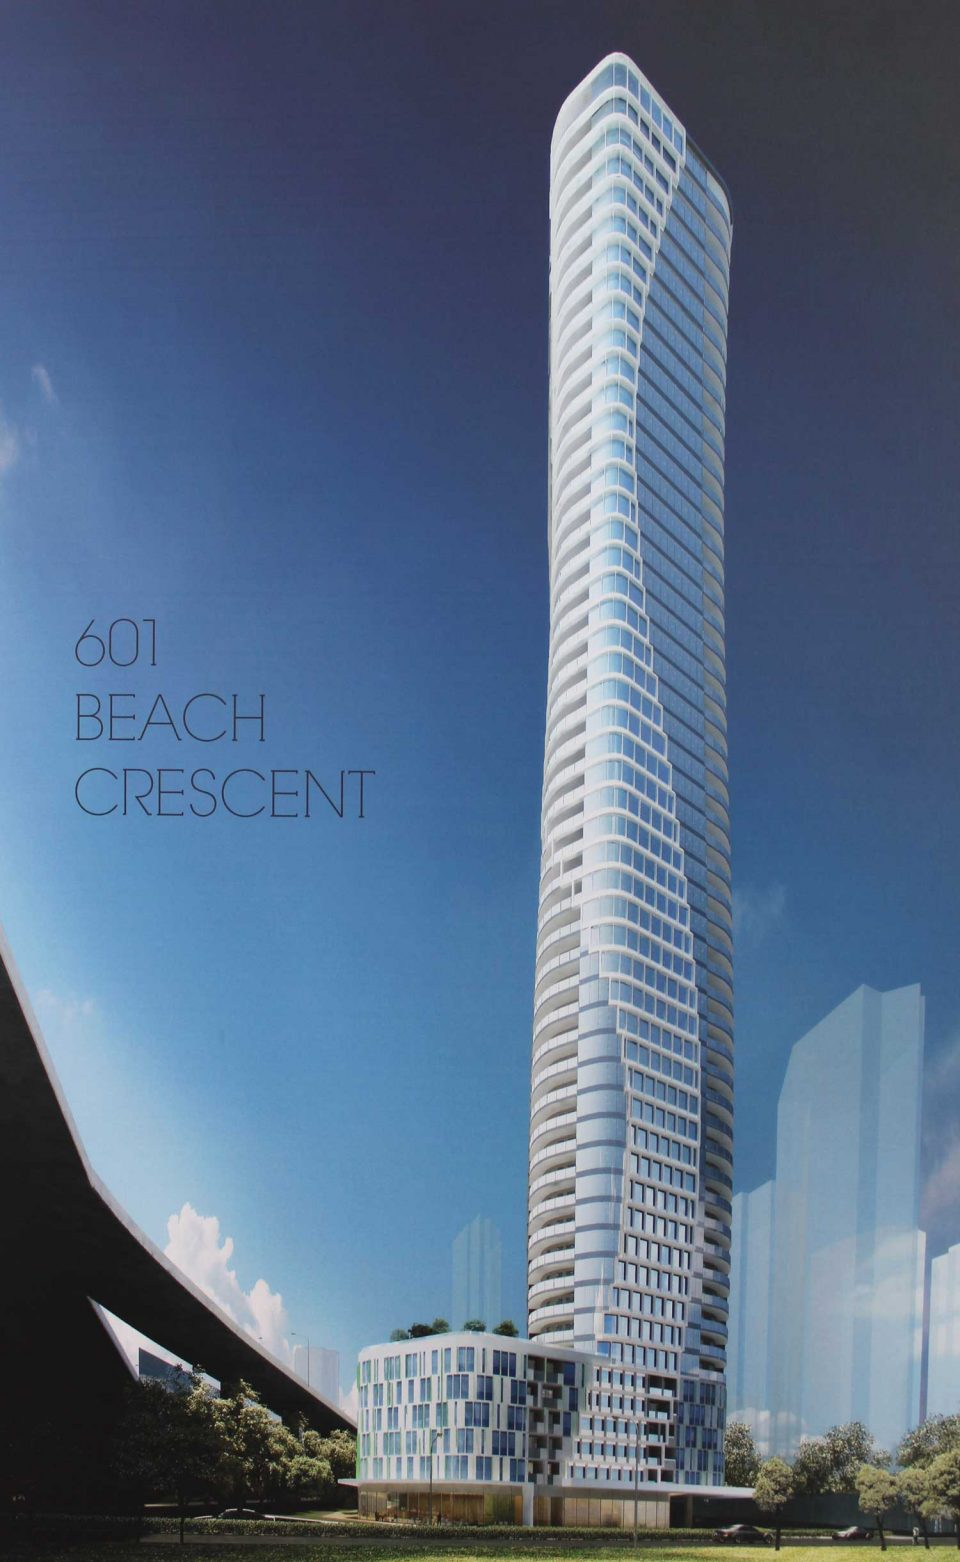 601 Beach Crescent tower rendering